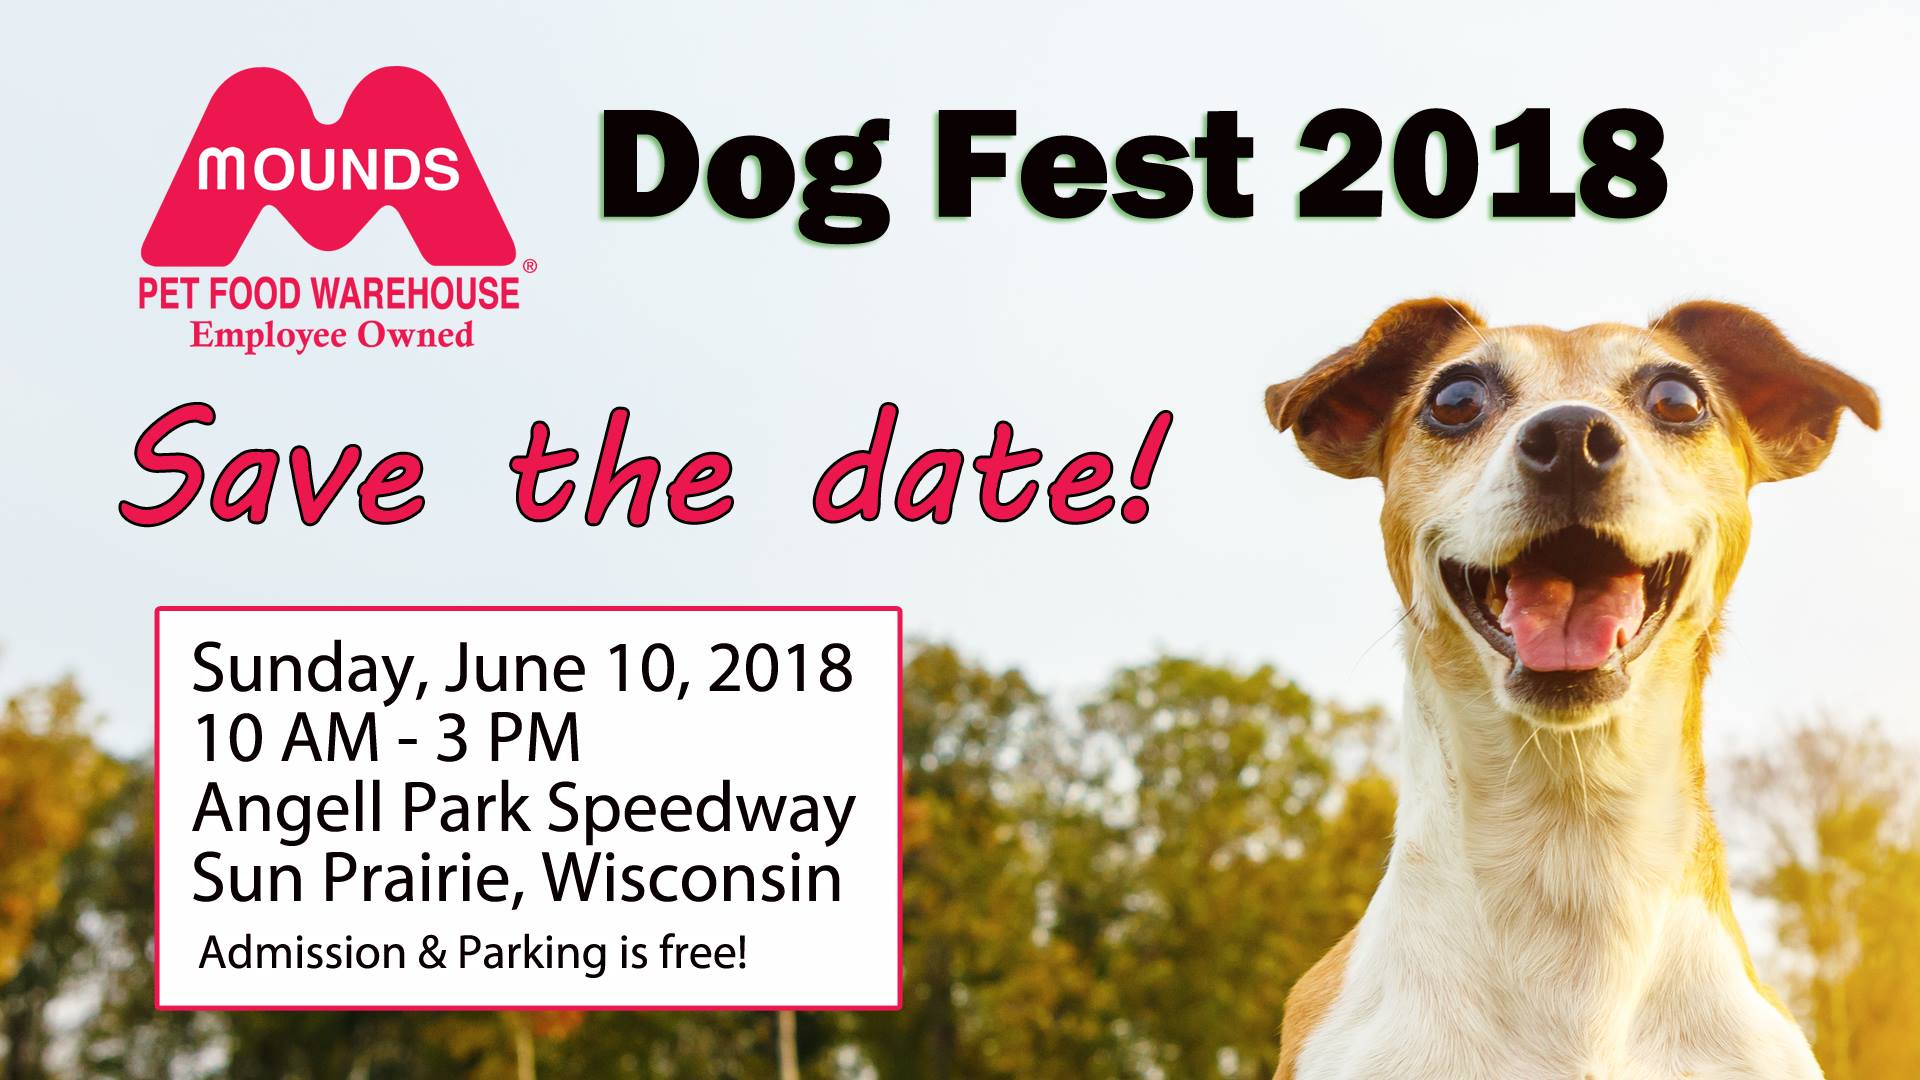 Mounds Dog Fest 2018